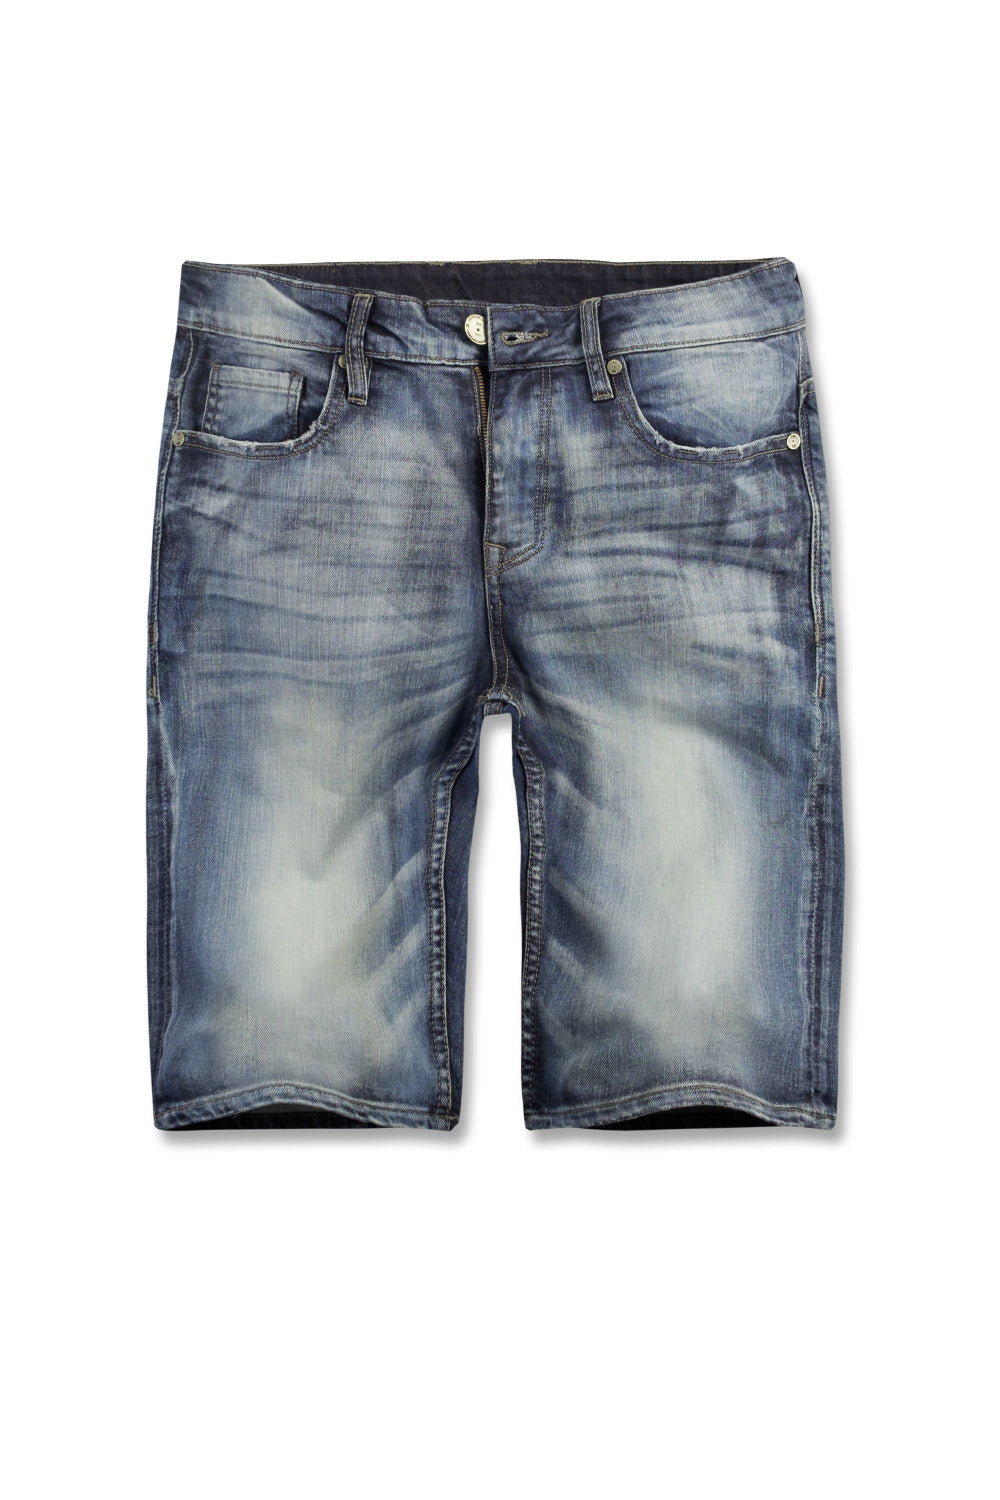 Jordan Craig - Newcastle Denim Shorts (Destroyed Blue)